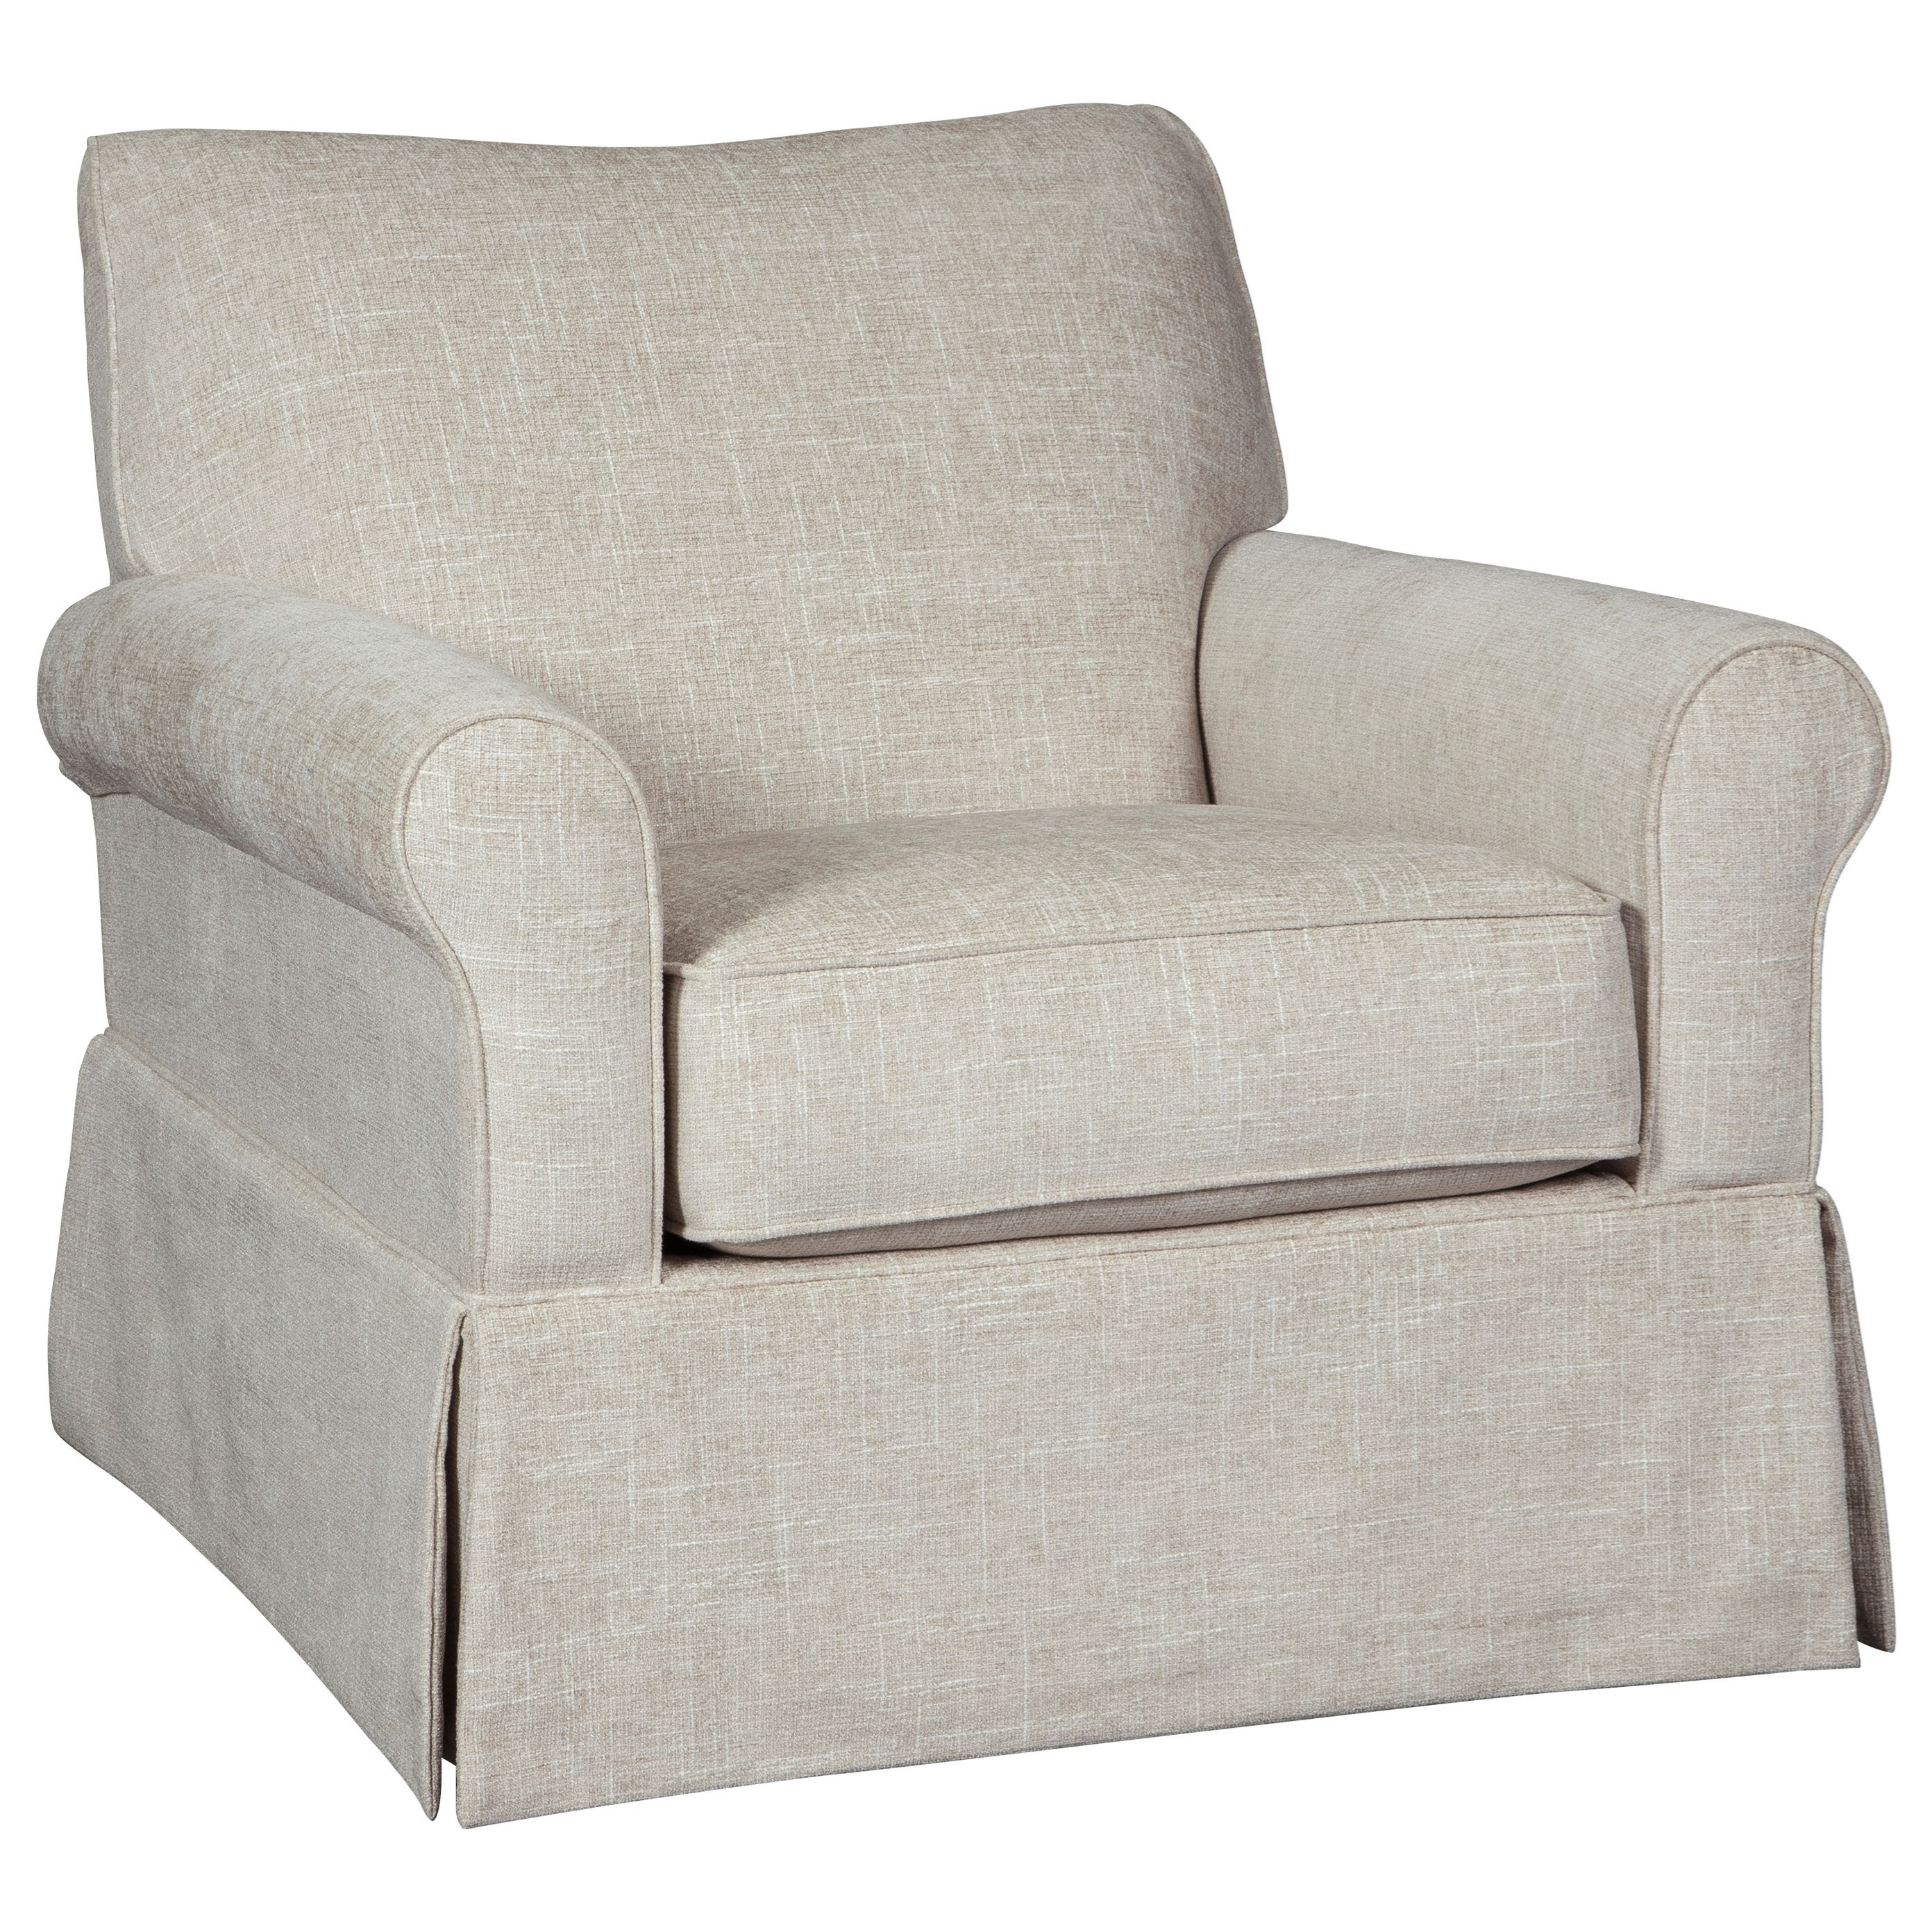 Searcy Swivel Glider Accent Chair by Ashley (Signature Design) at Johnny Janosik